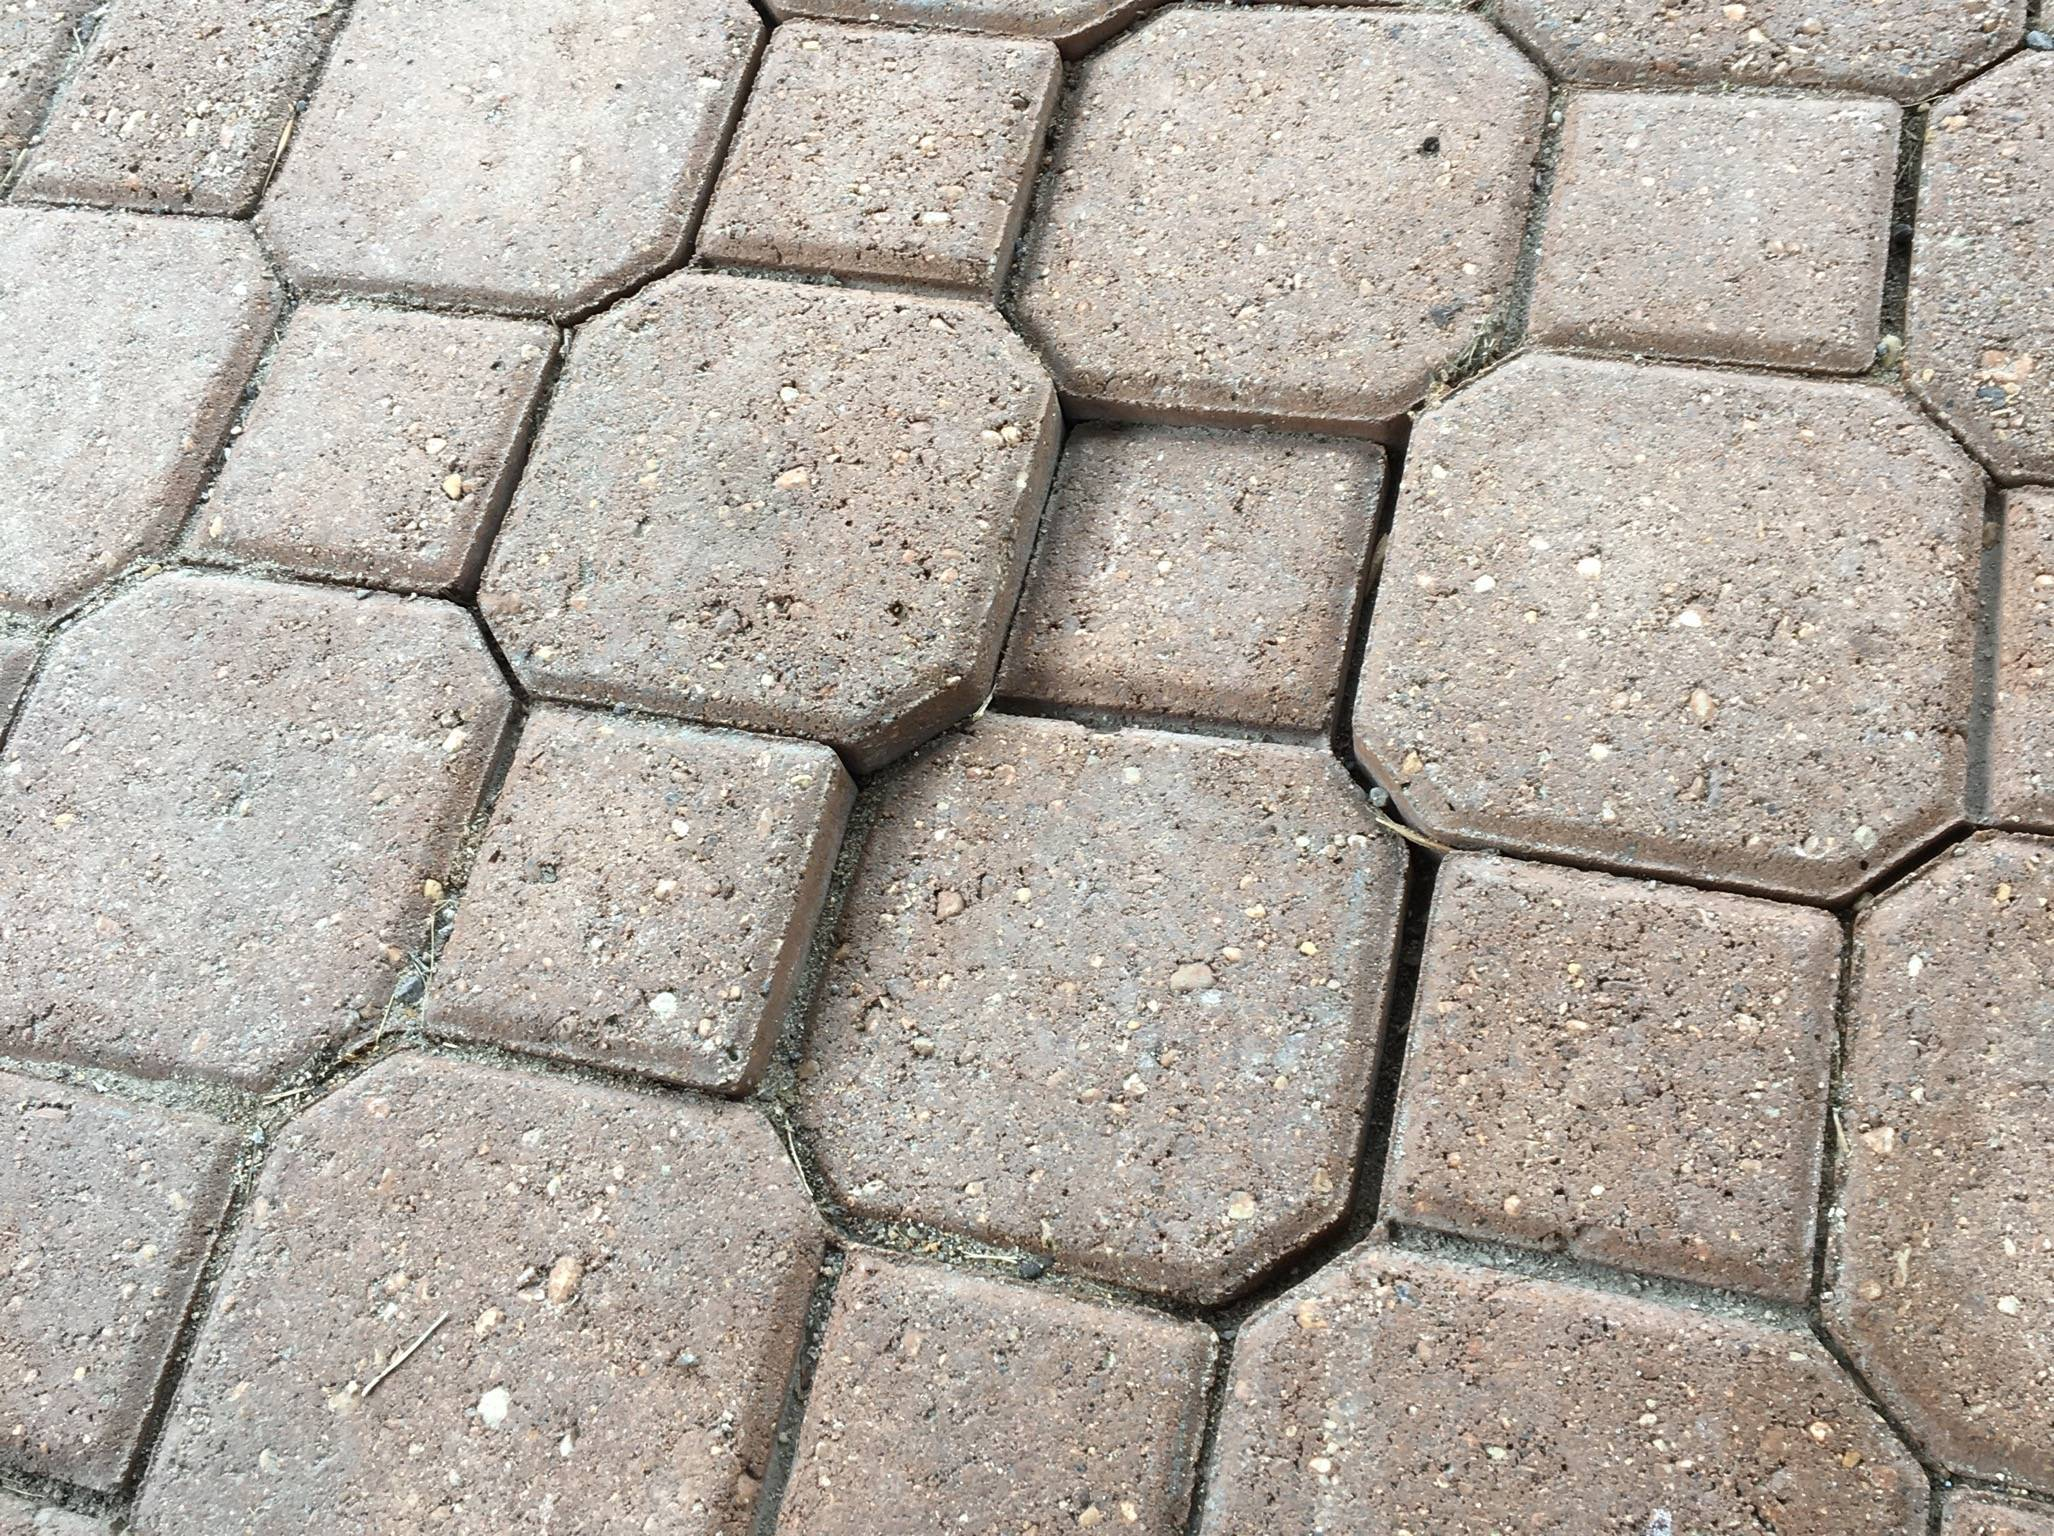 how can i lift a sunken paver in the